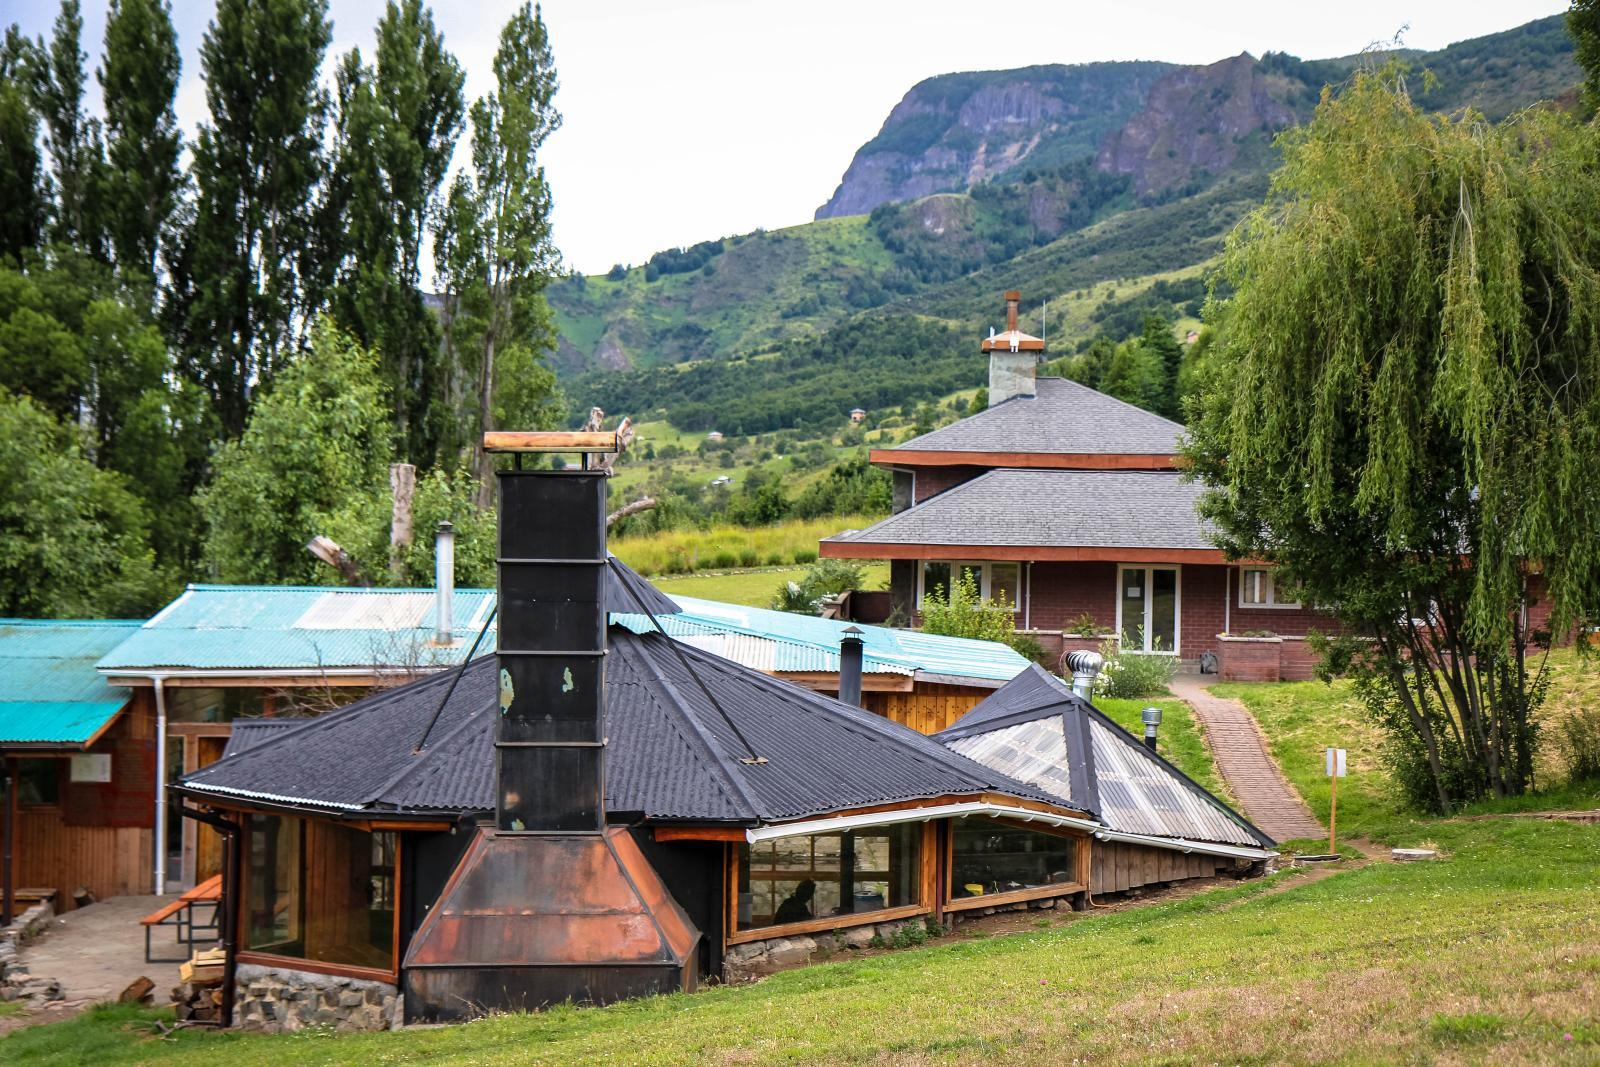 Buildings of the NOLS Patagonia campus